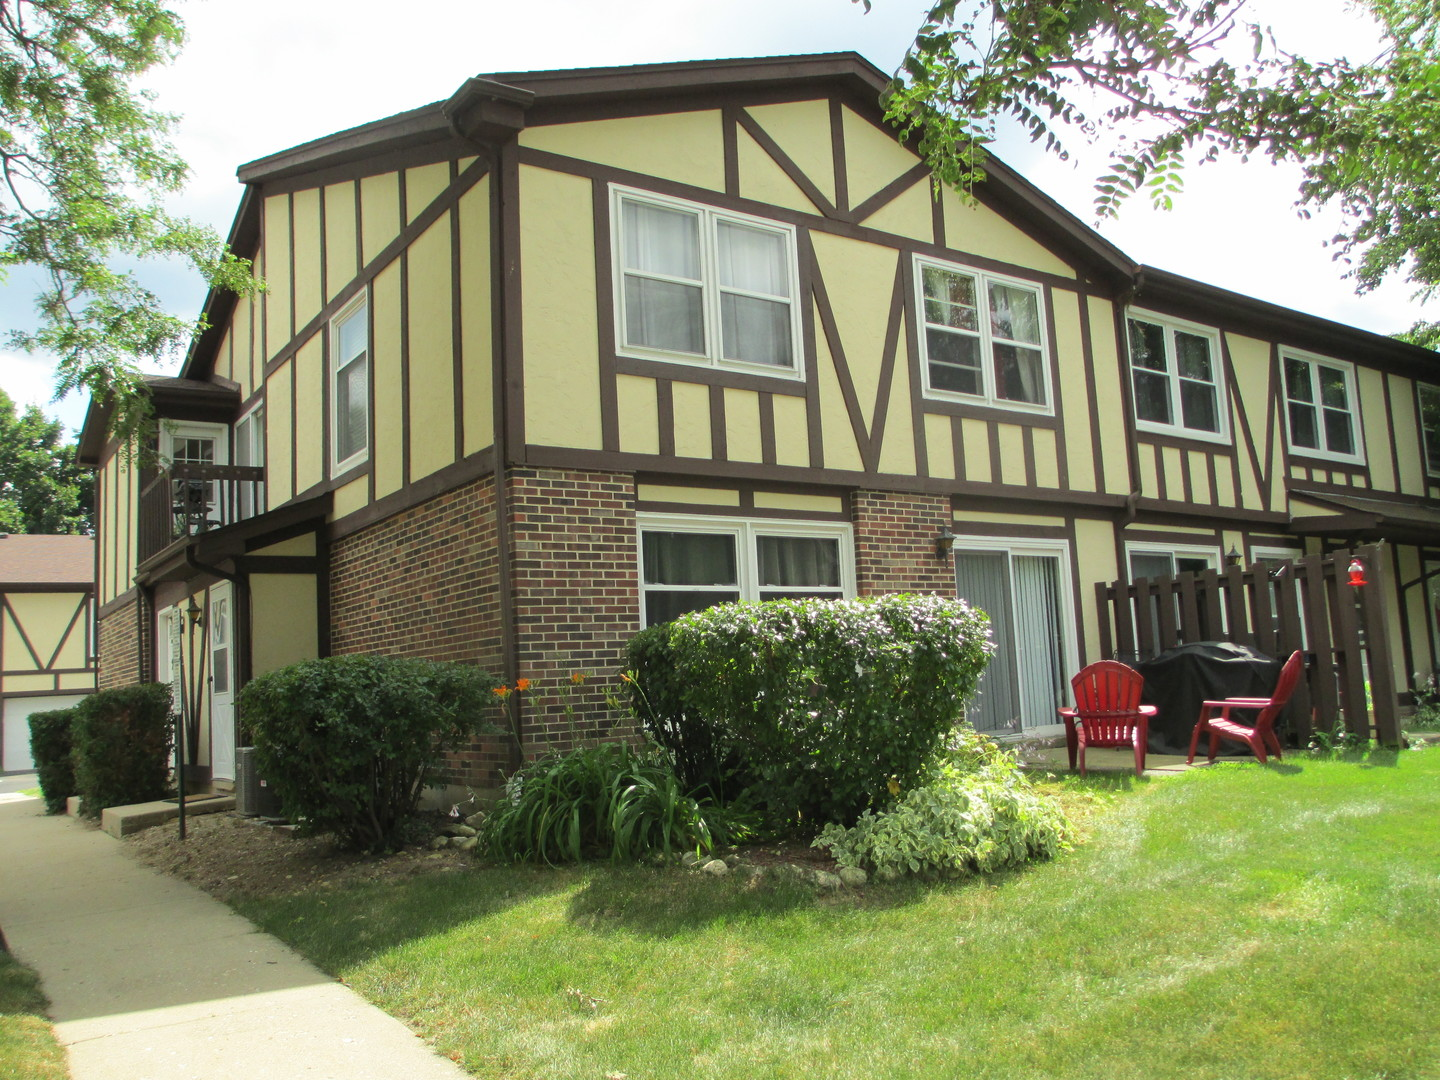 Photo for 412 Saint Johns Road, Unit Number B, WOODSTOCK, IL 60098 (MLS # 10465855)